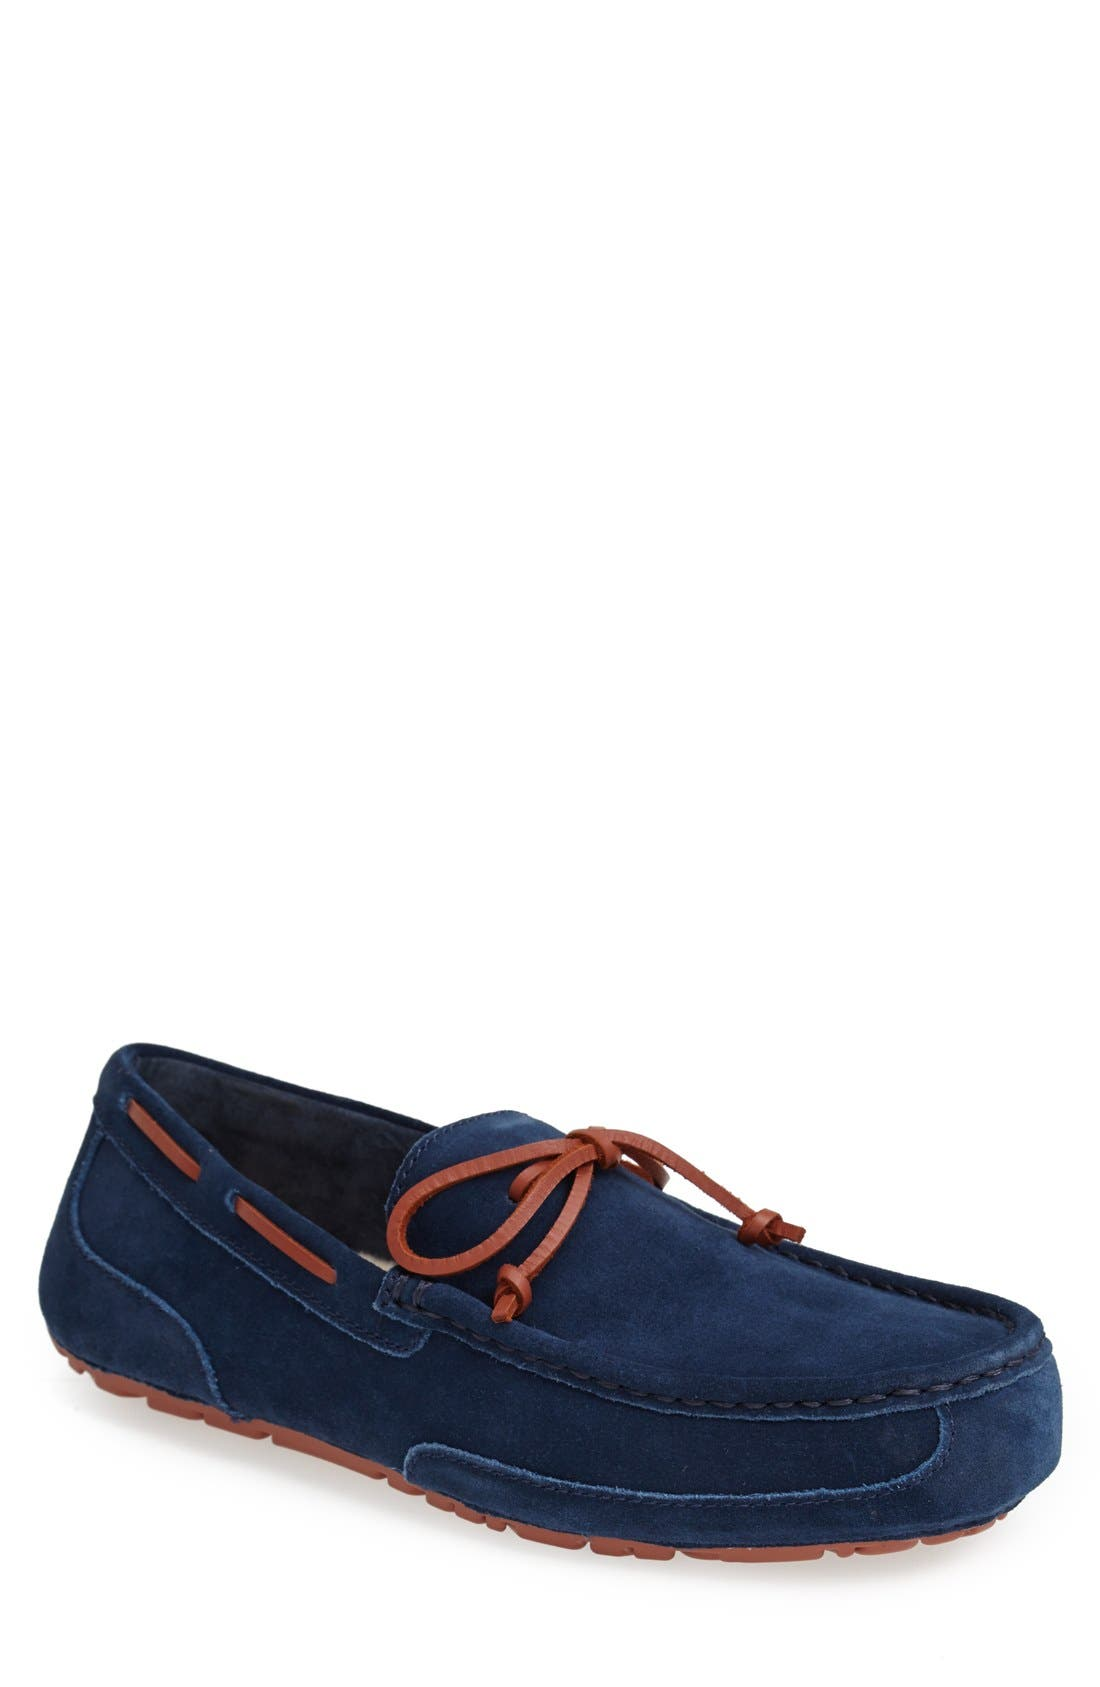 'Chester' Driving Loafer,                             Main thumbnail 8, color,